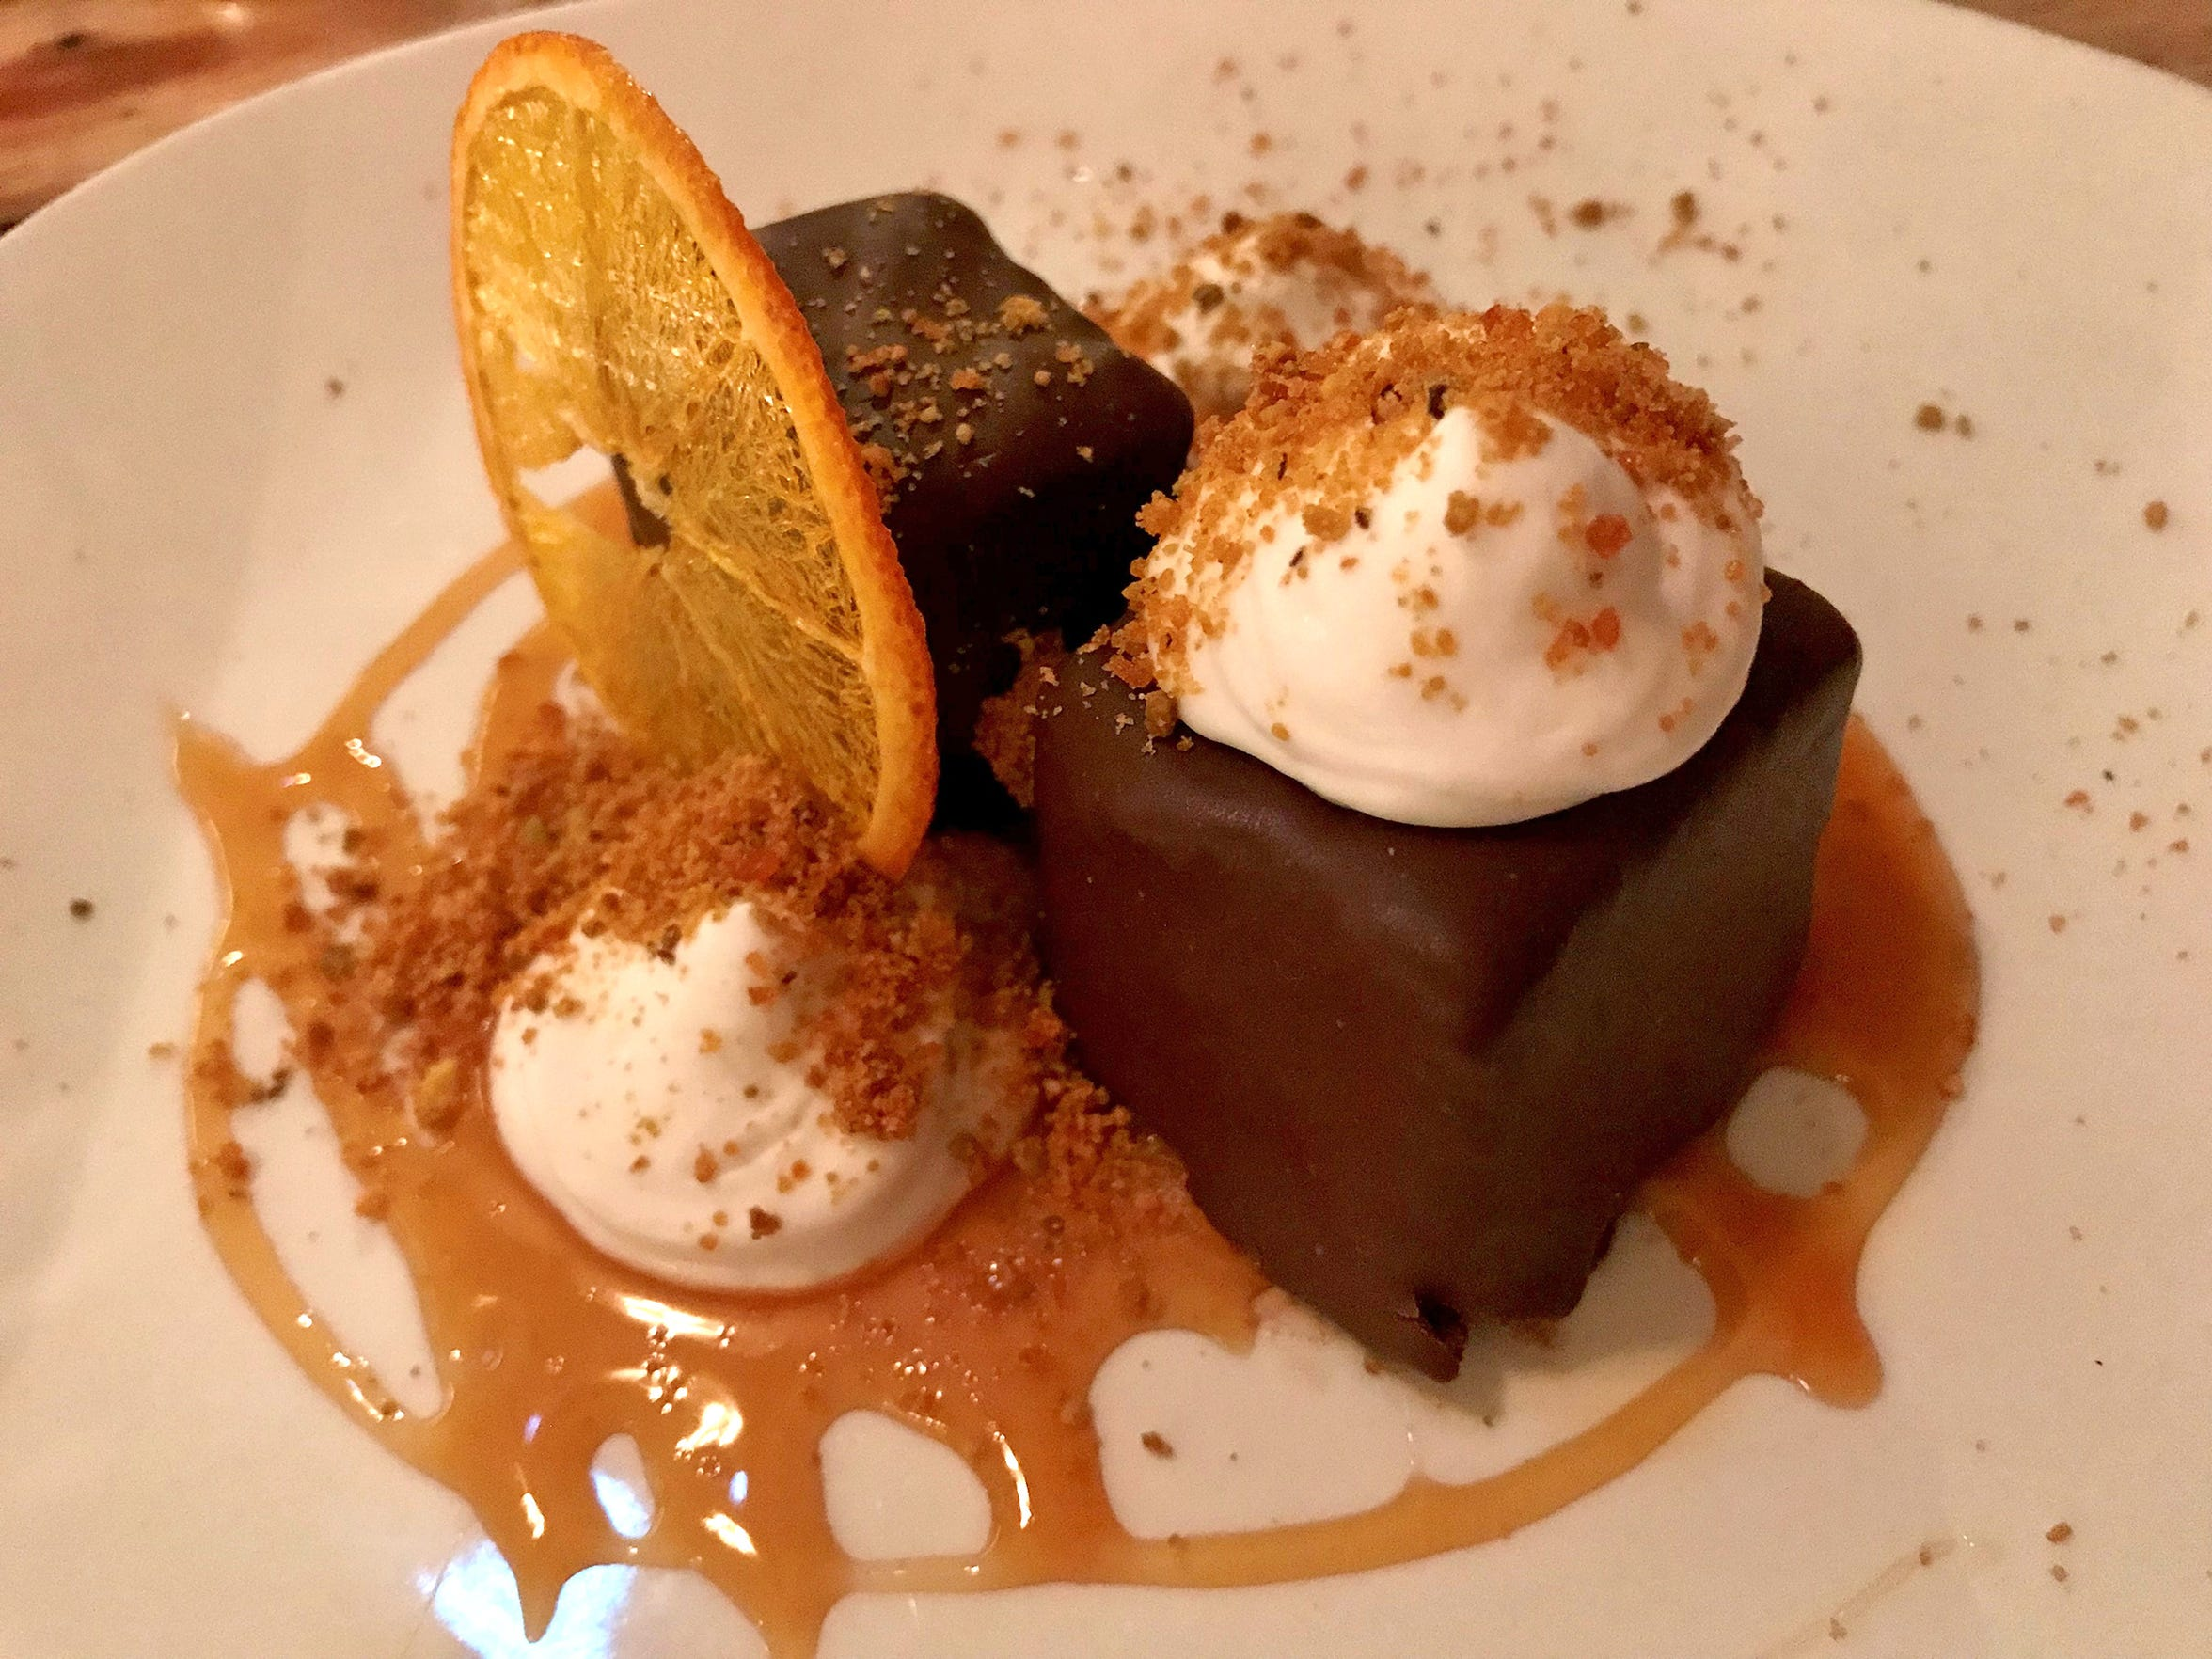 From the changing lineup of desserts at Odd Duck, 2352 S. Kinnickinnic Ave.: chocolate ganache cake with coconut foam, caramel and pistachio-praline dust.